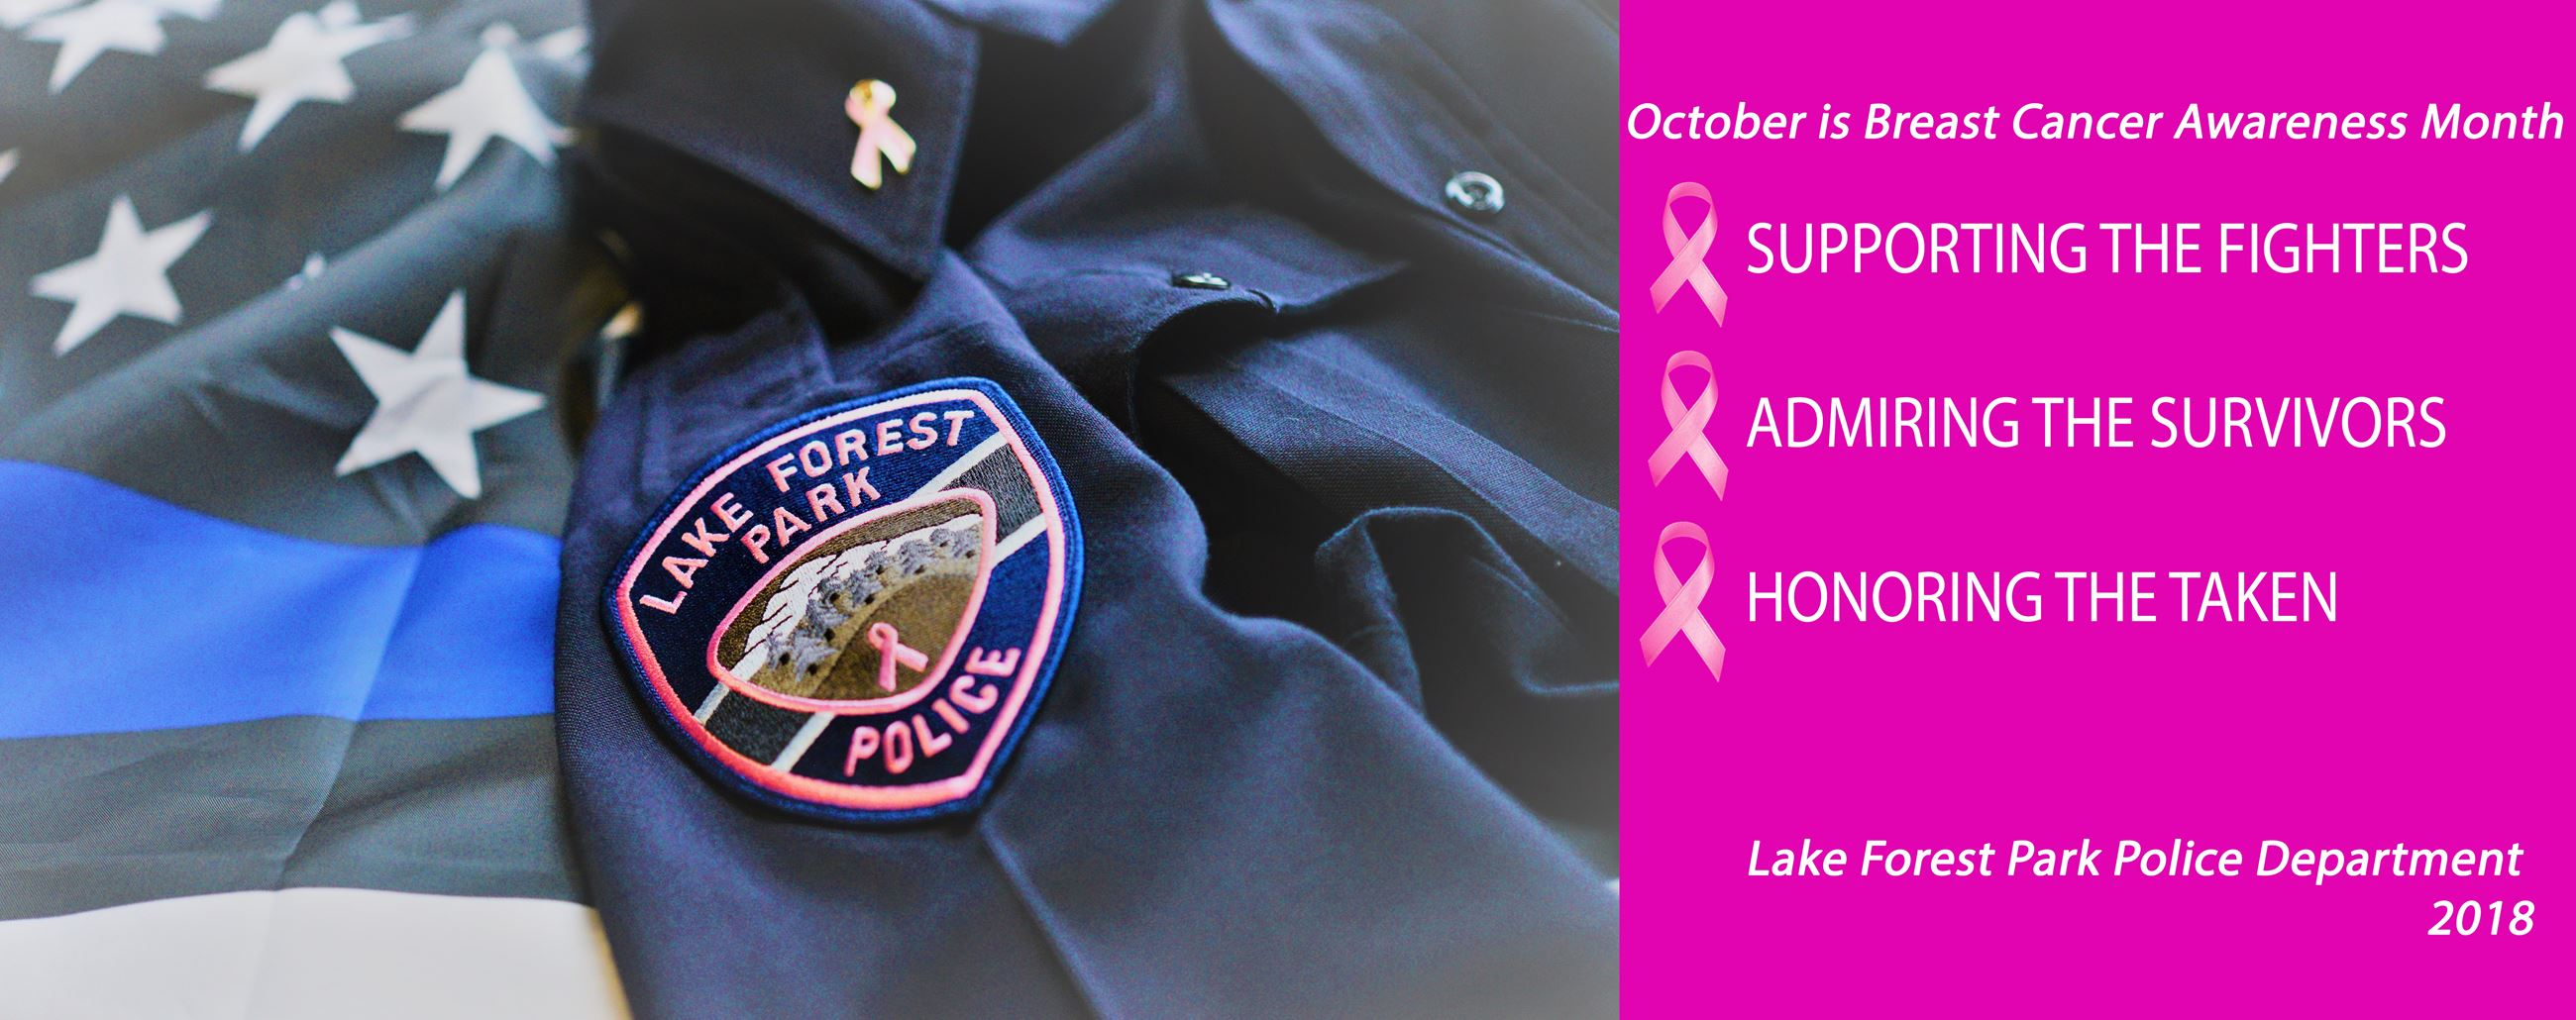 Photo of the Lake Forest Park pink law enforcement patch displayed on the arm of a uniform